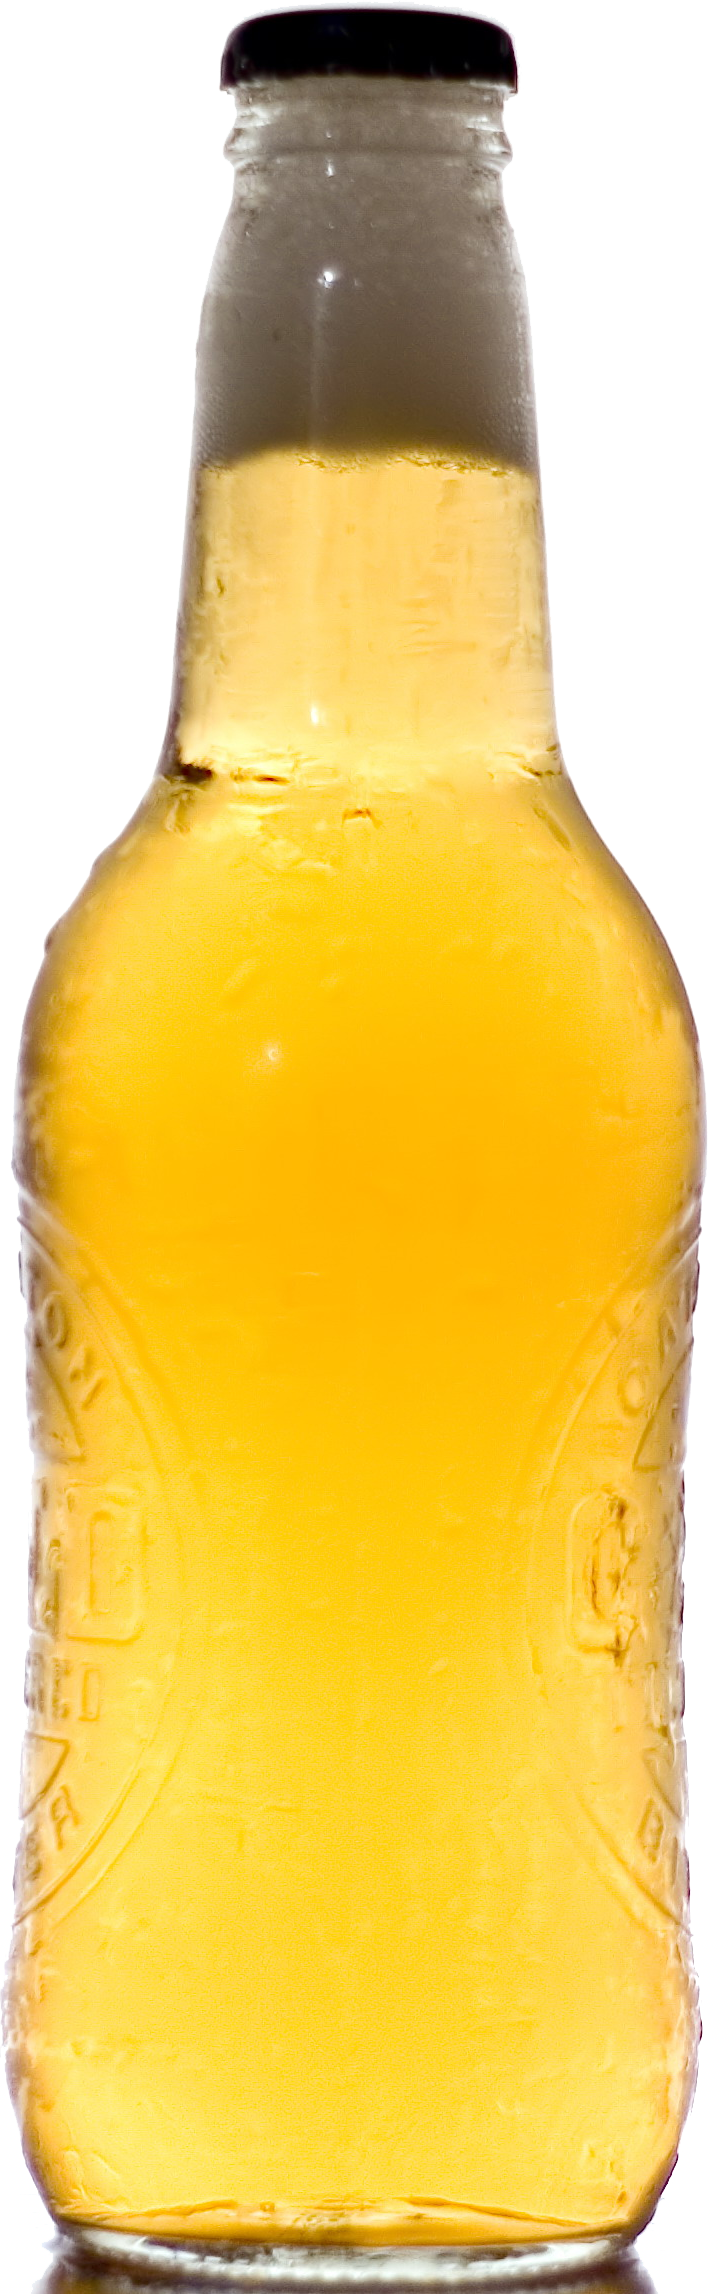 Beer bottle PNG image, download picture